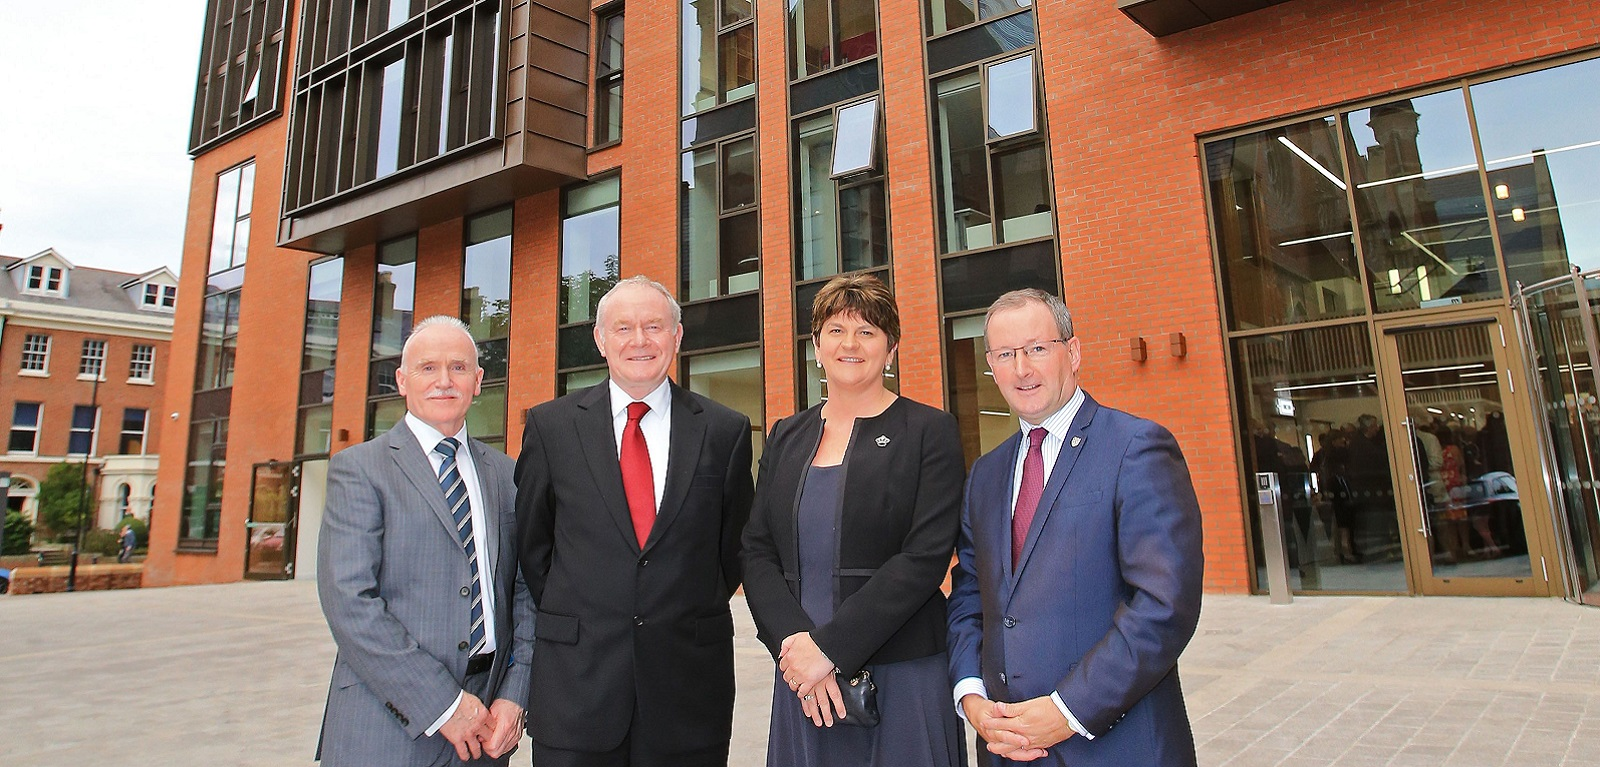 Queen's School of Law opening: Registrar and Chief Operating Officer James O'Kane, deputy First Minister Martin McGuinness, the First Minister Arlene Foster and Queen's Vice-Chancellor Professor Patrick Johnston